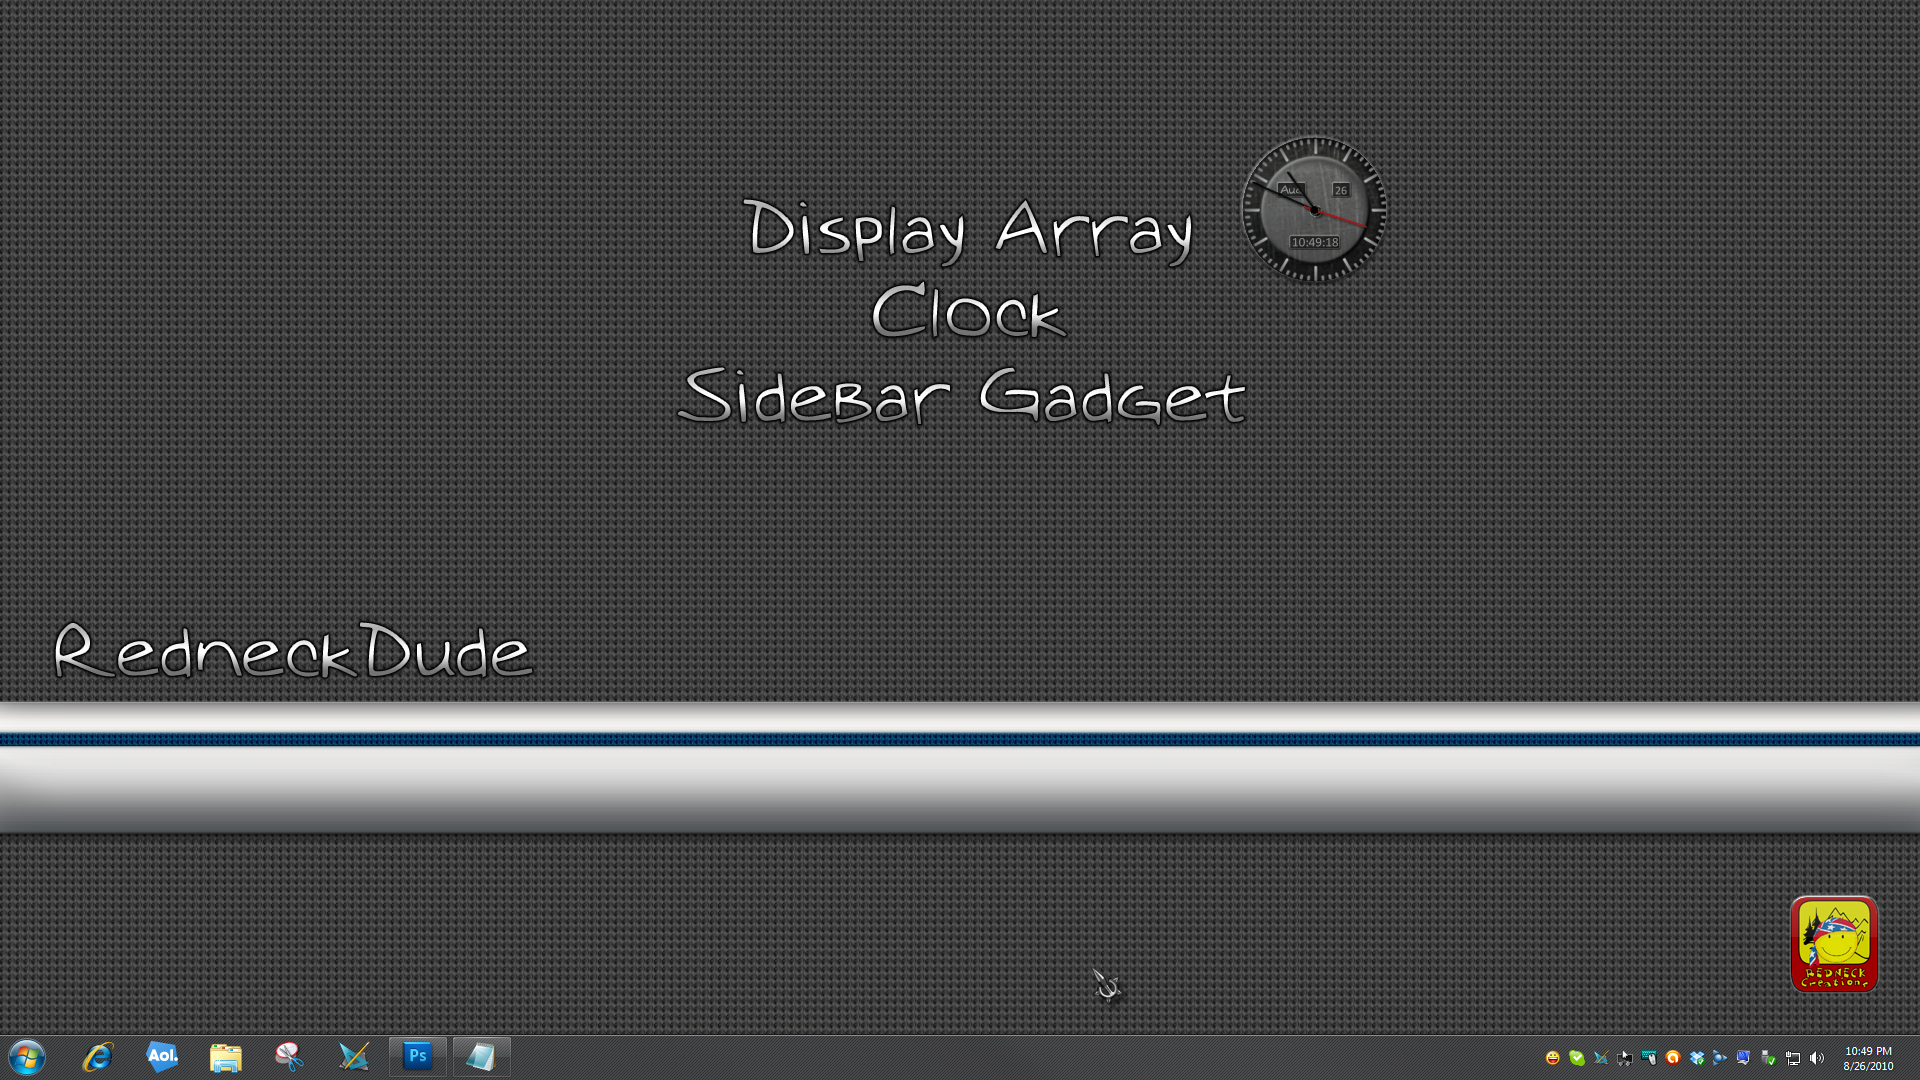 Display Array Sidebar Gadget Clock